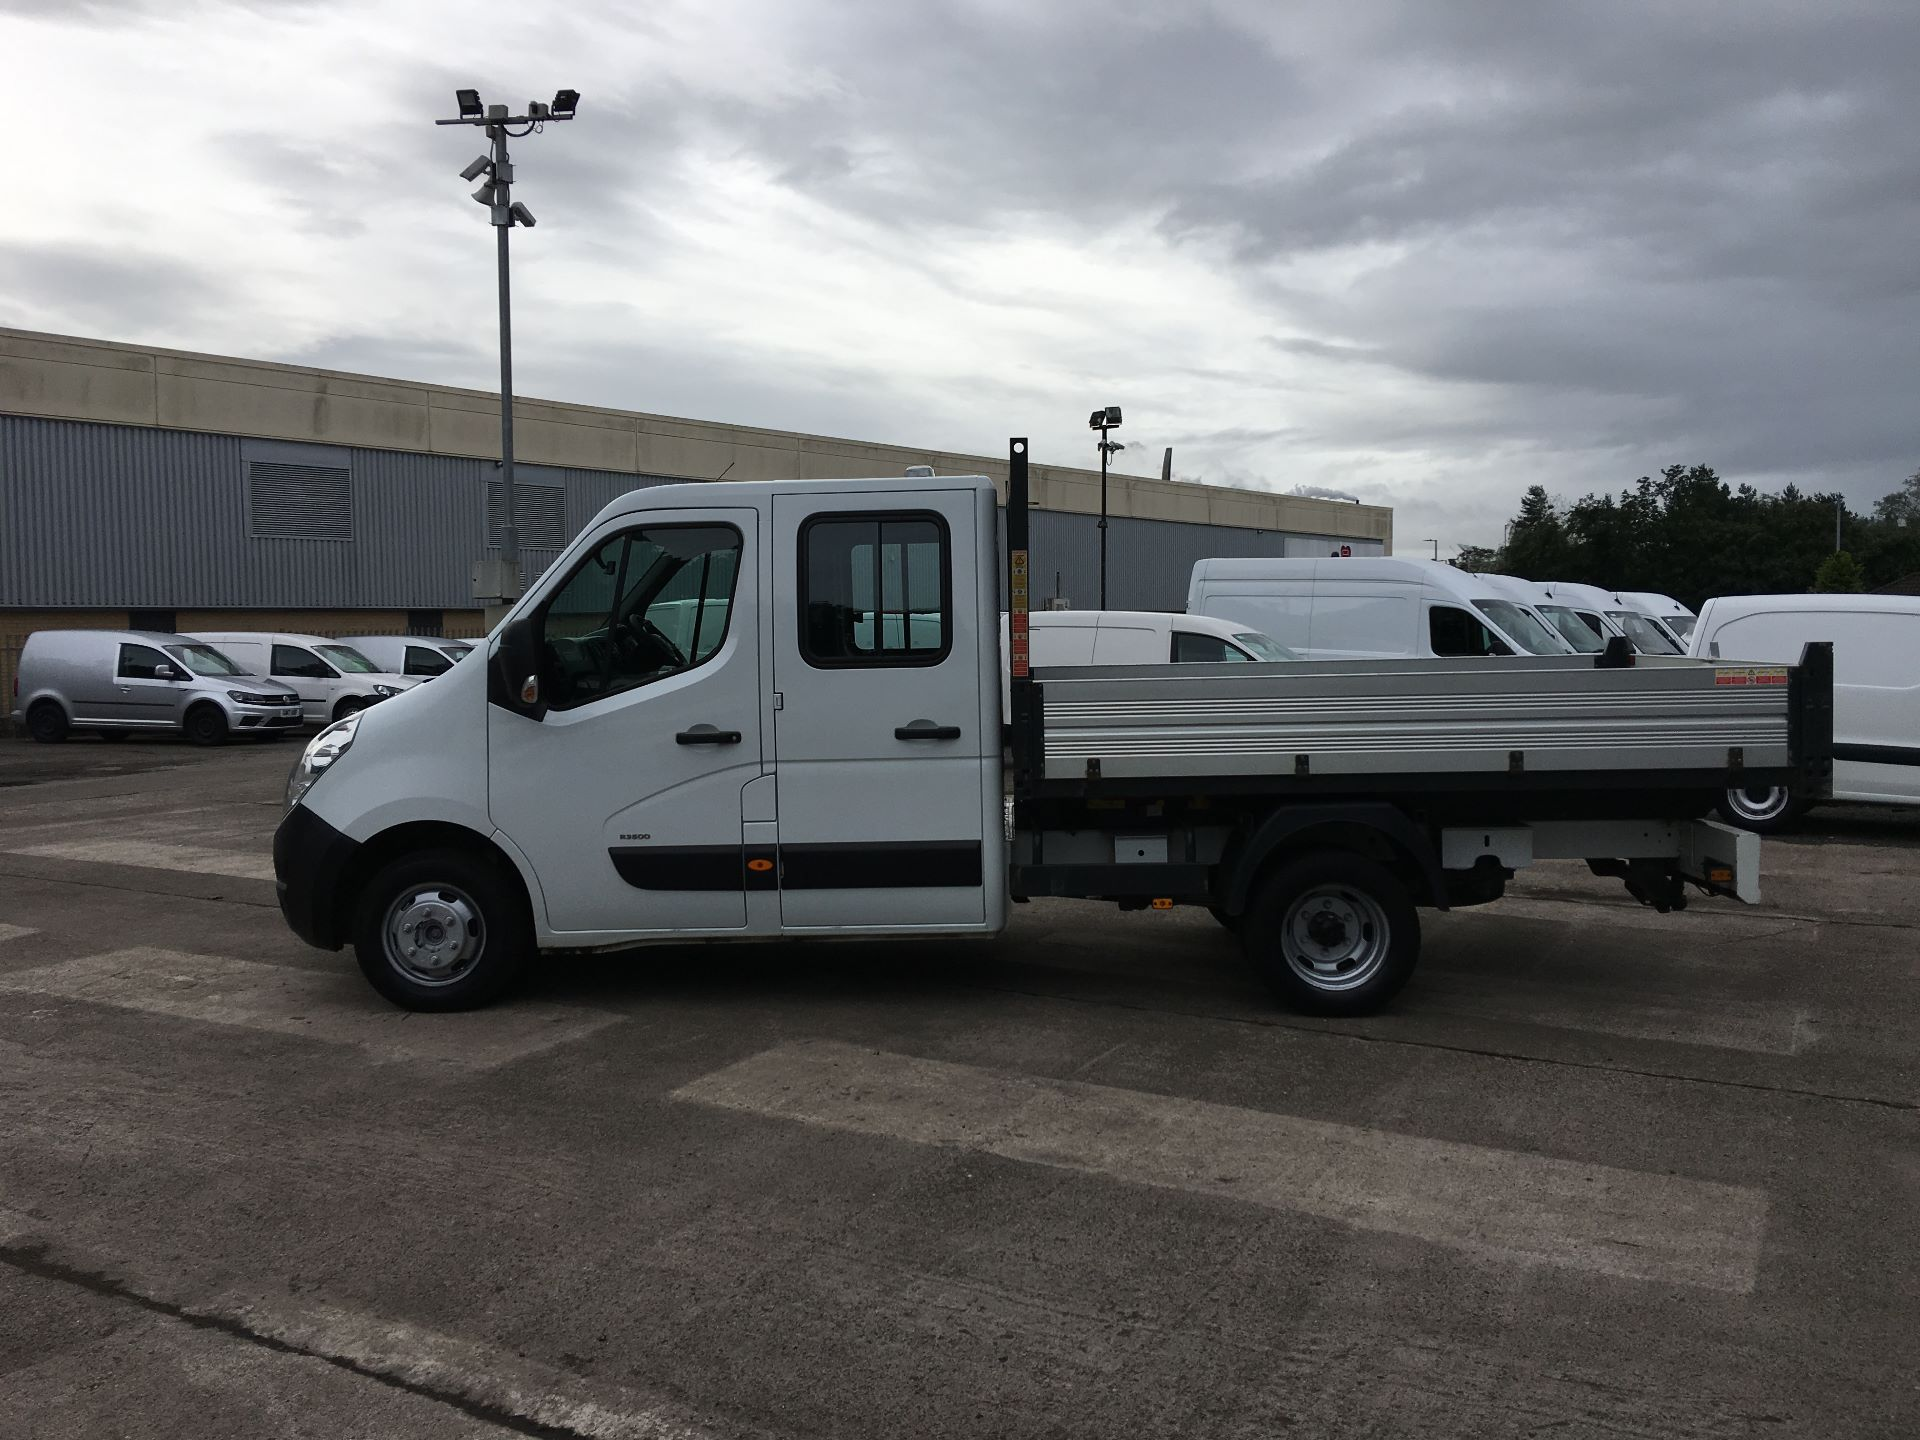 2016 Vauxhall Movano 35 L3 DIESEL RWD 2.3 CDTI 125PS D/CAB TIPPER EURO 5 (YT16WLR) Image 11